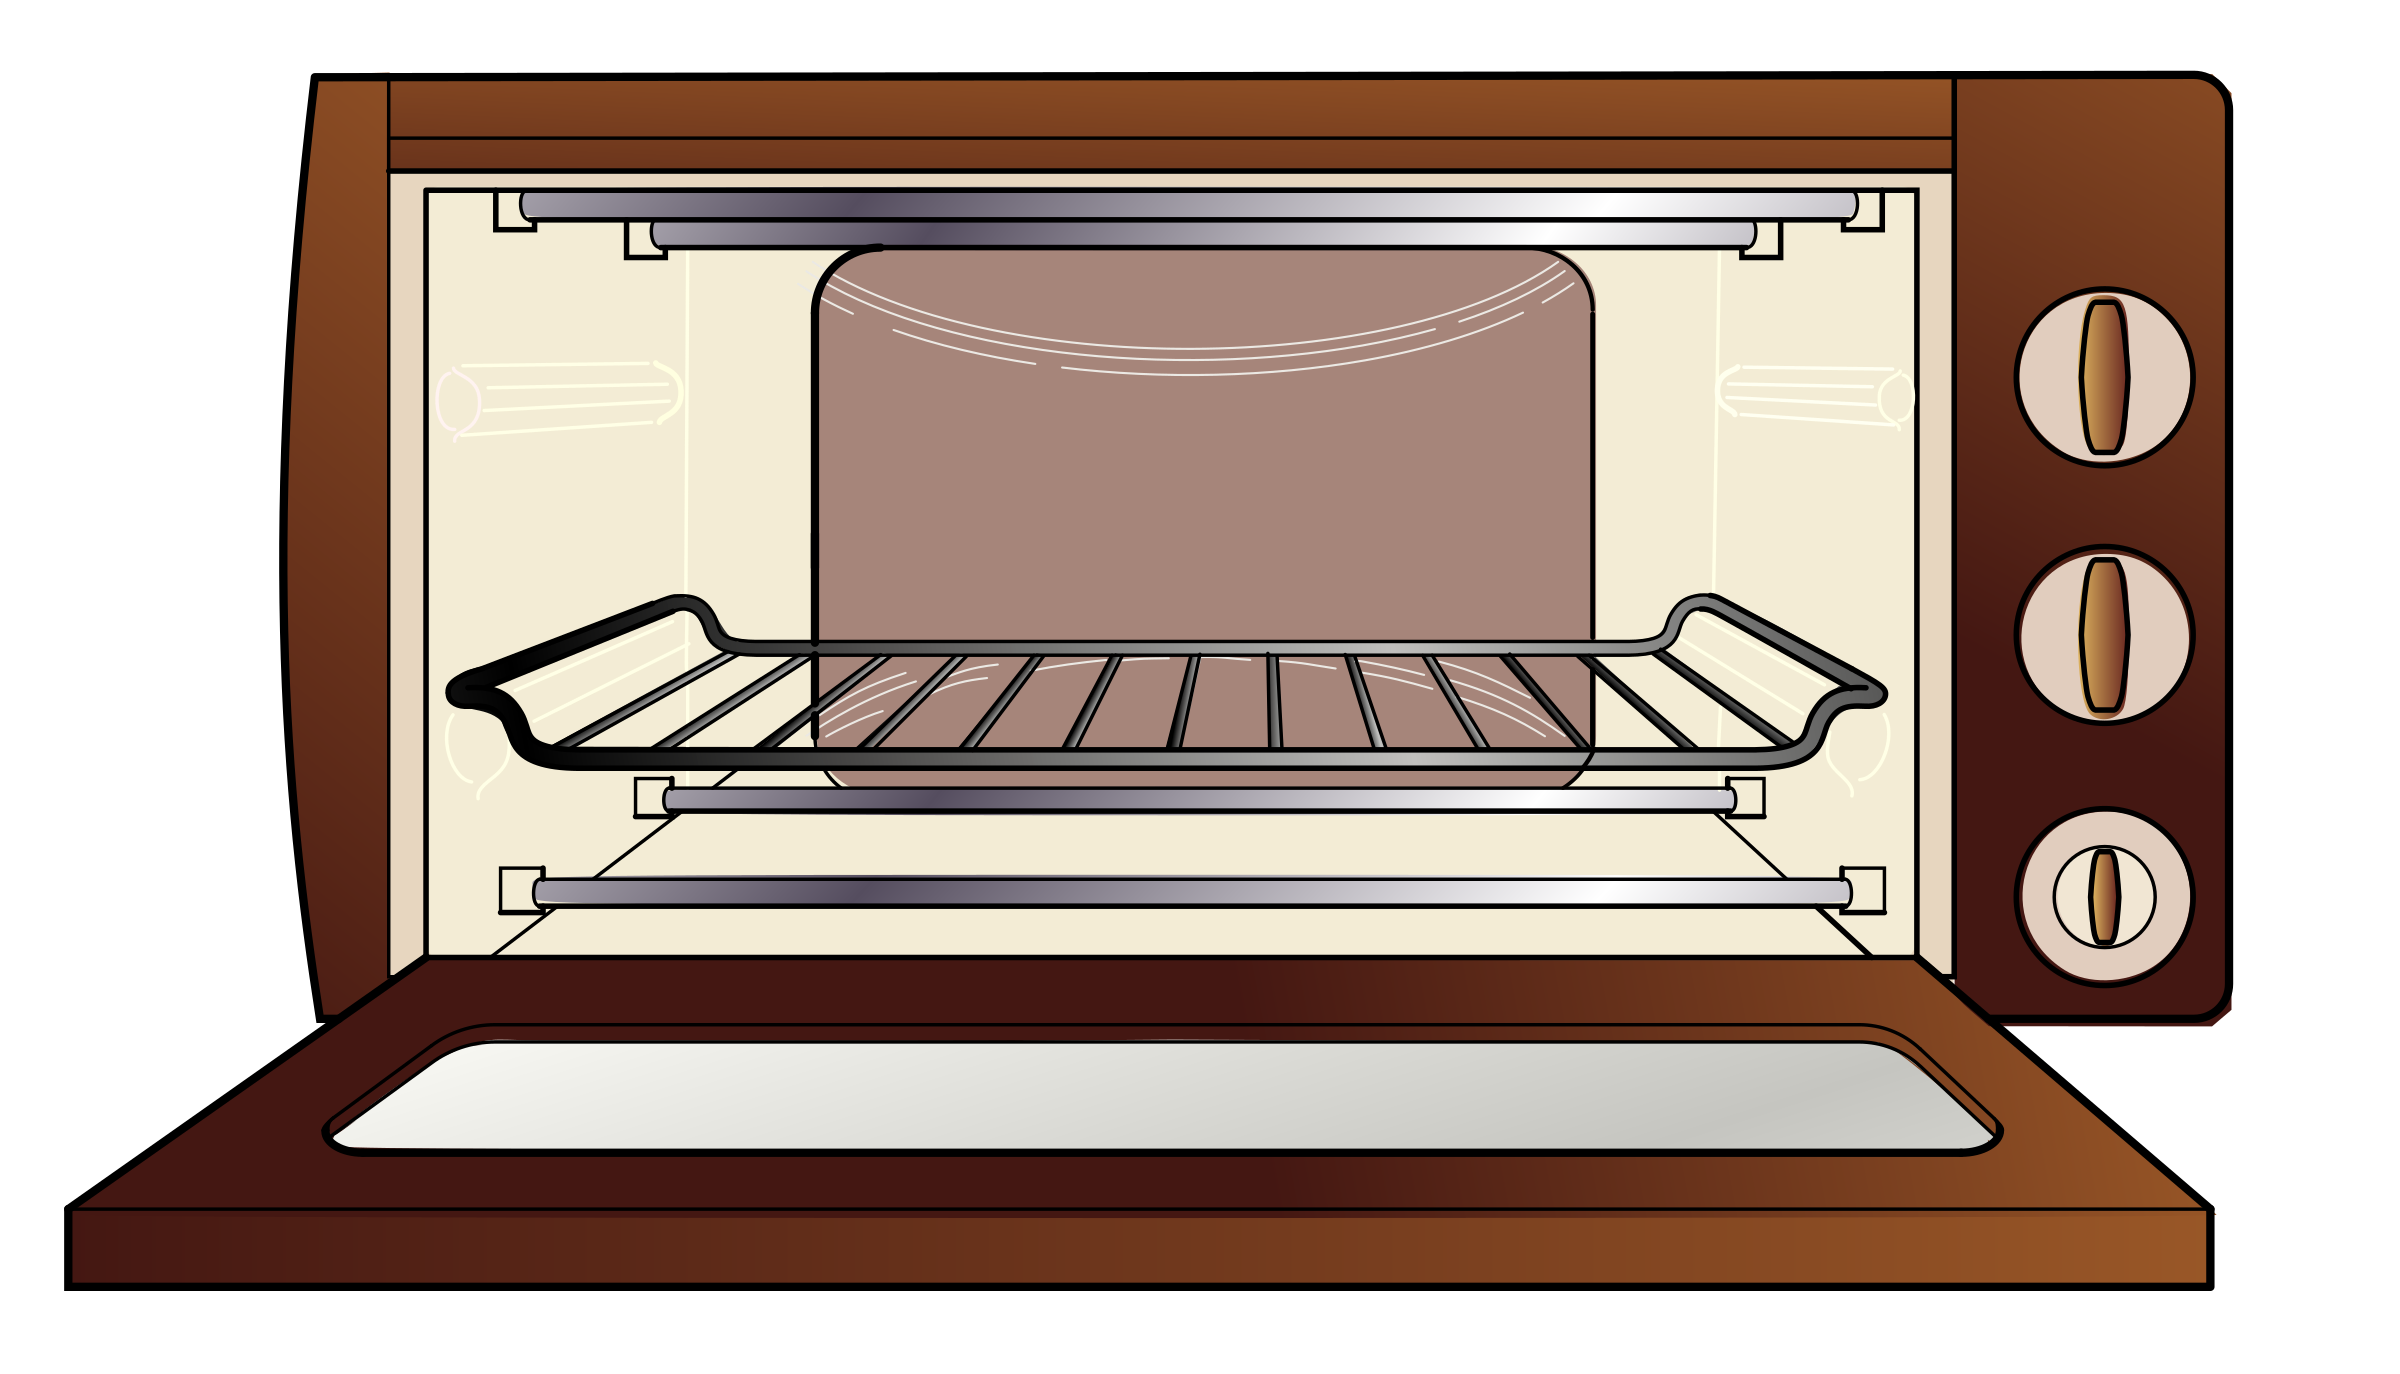 Oven vector toaster. Cliparts for free